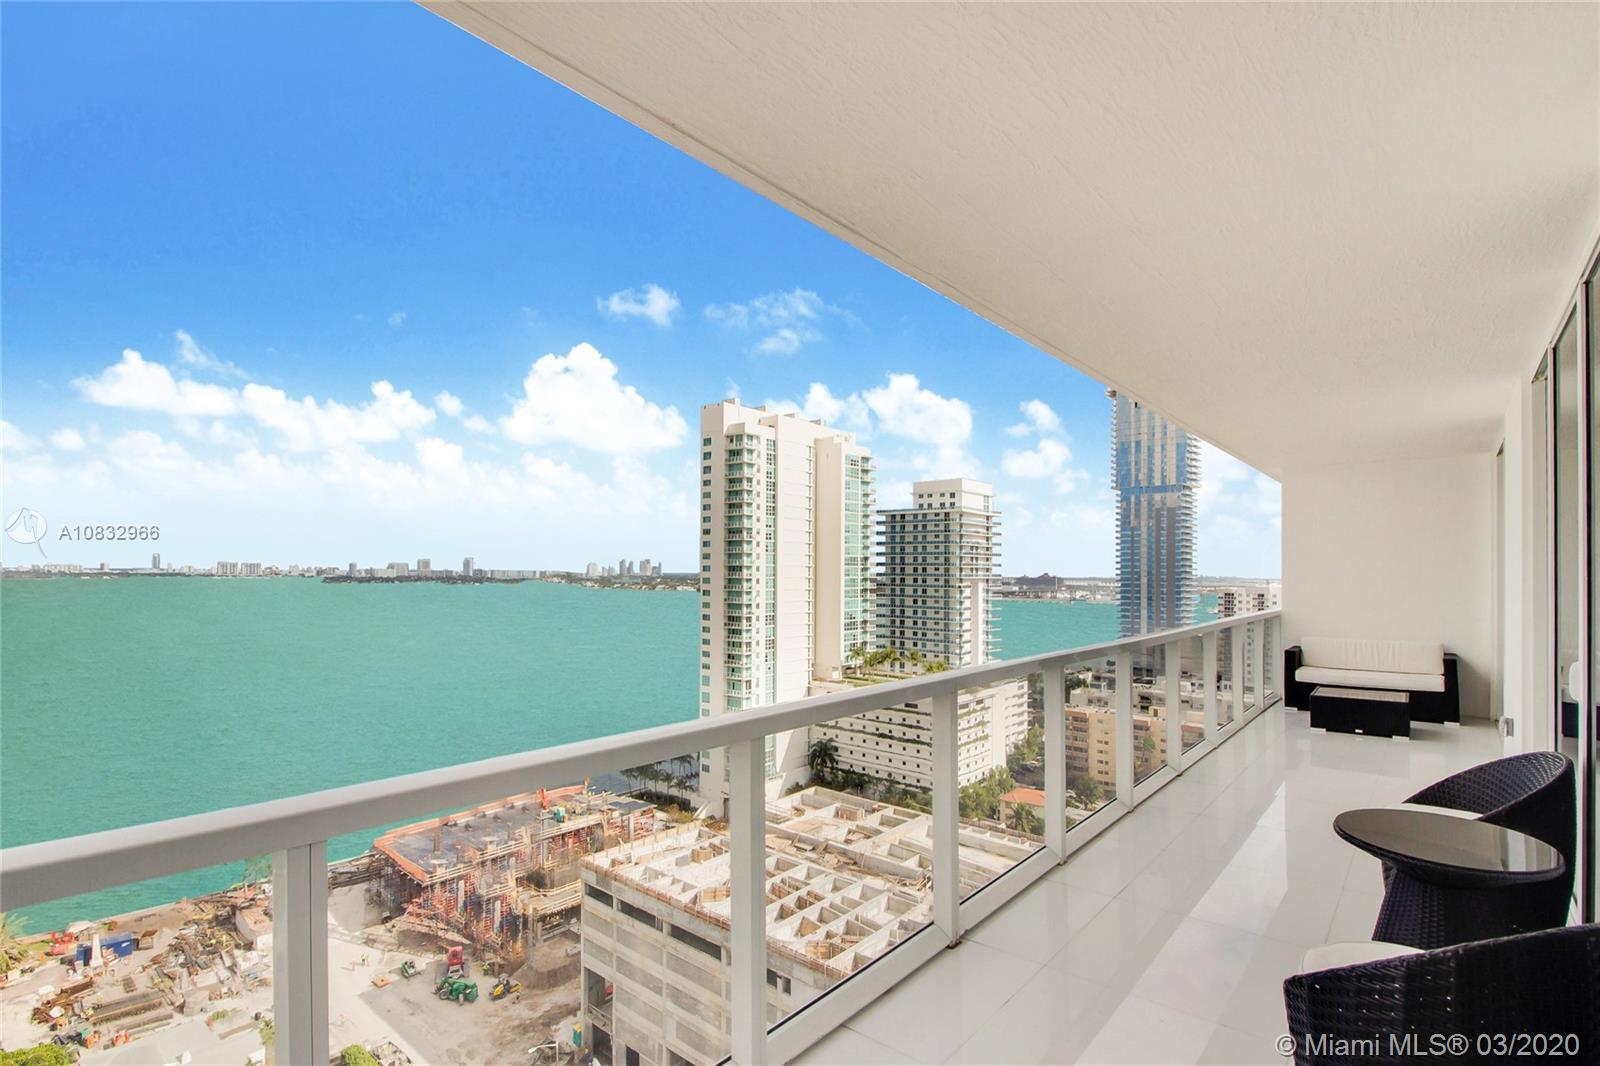 Spectacular unit with Unobstructed bay view!! Spacious unit with great floor plan, 3 bedrooms and 3